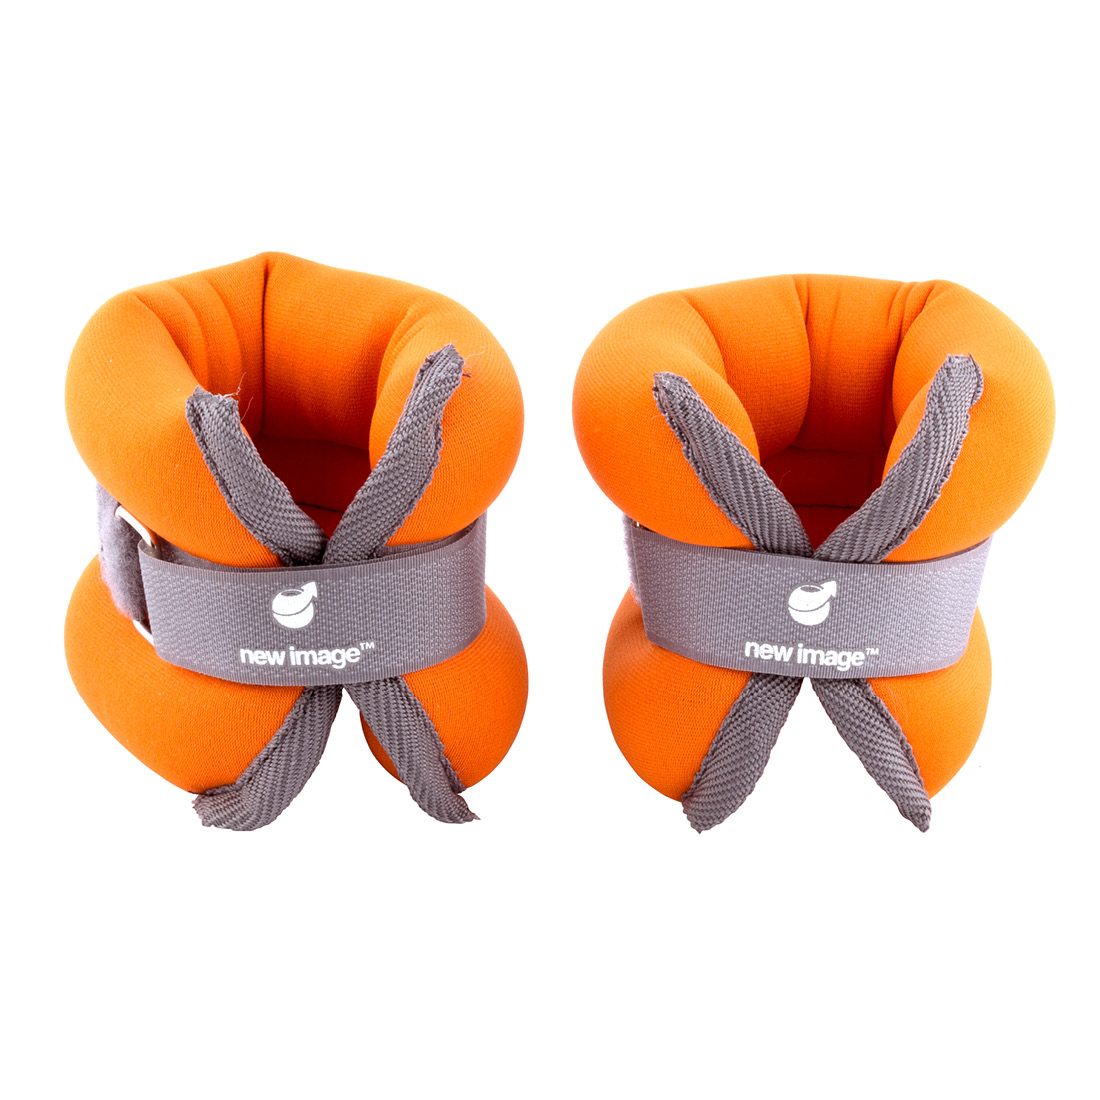 An image of Wrist Weights (2 x 1kg) by New Image